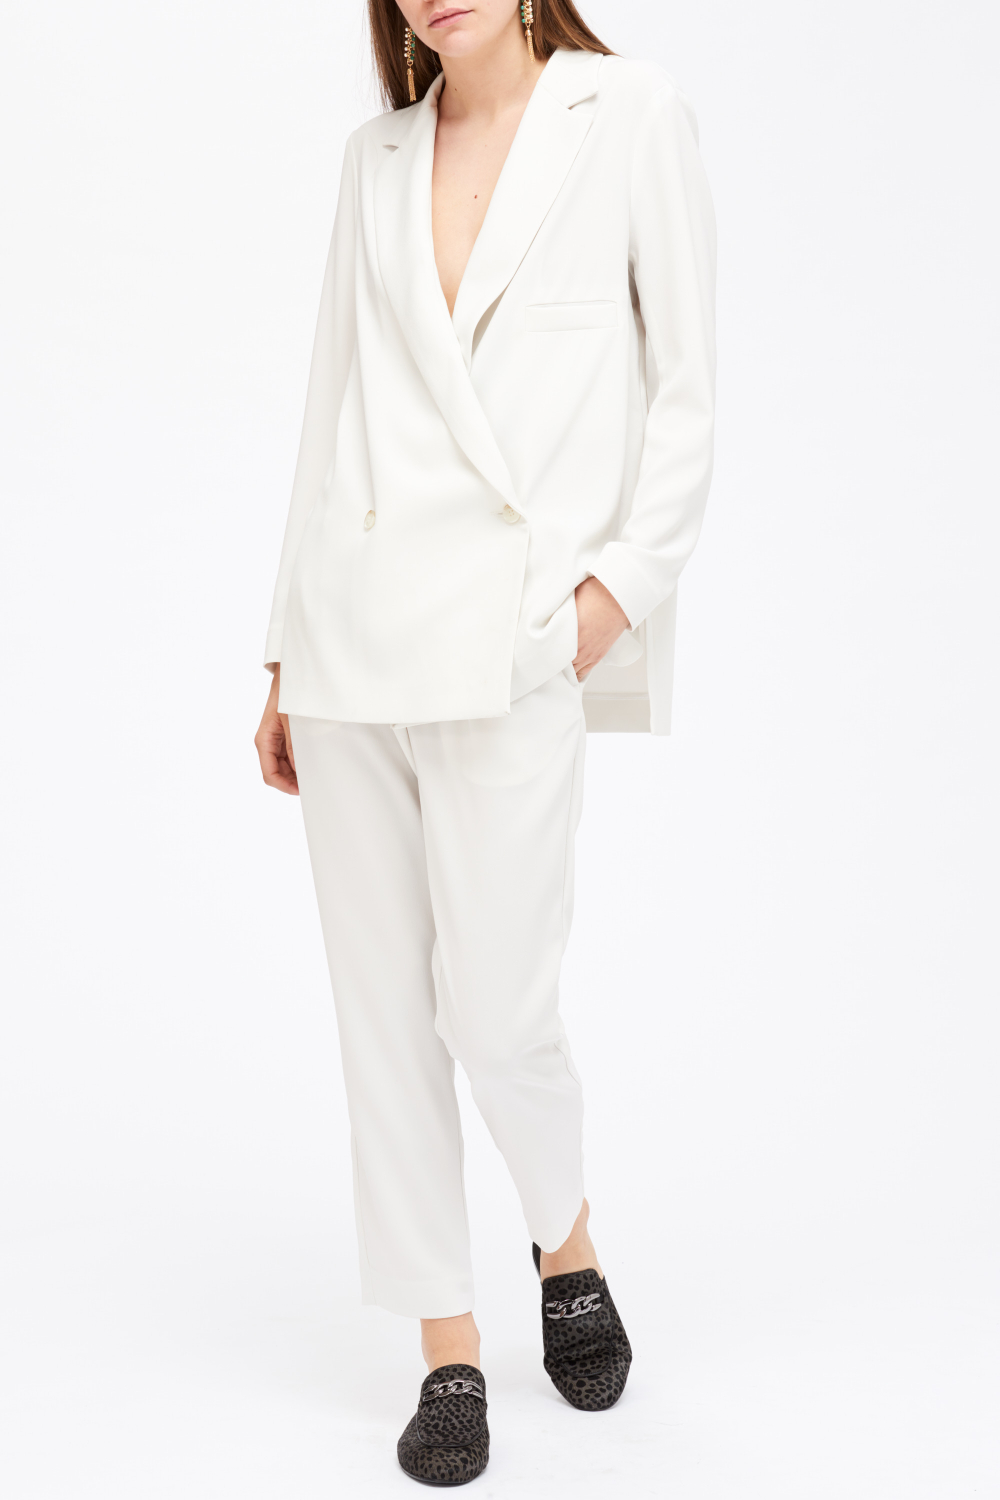 Billie & Me Lyn Blazer White